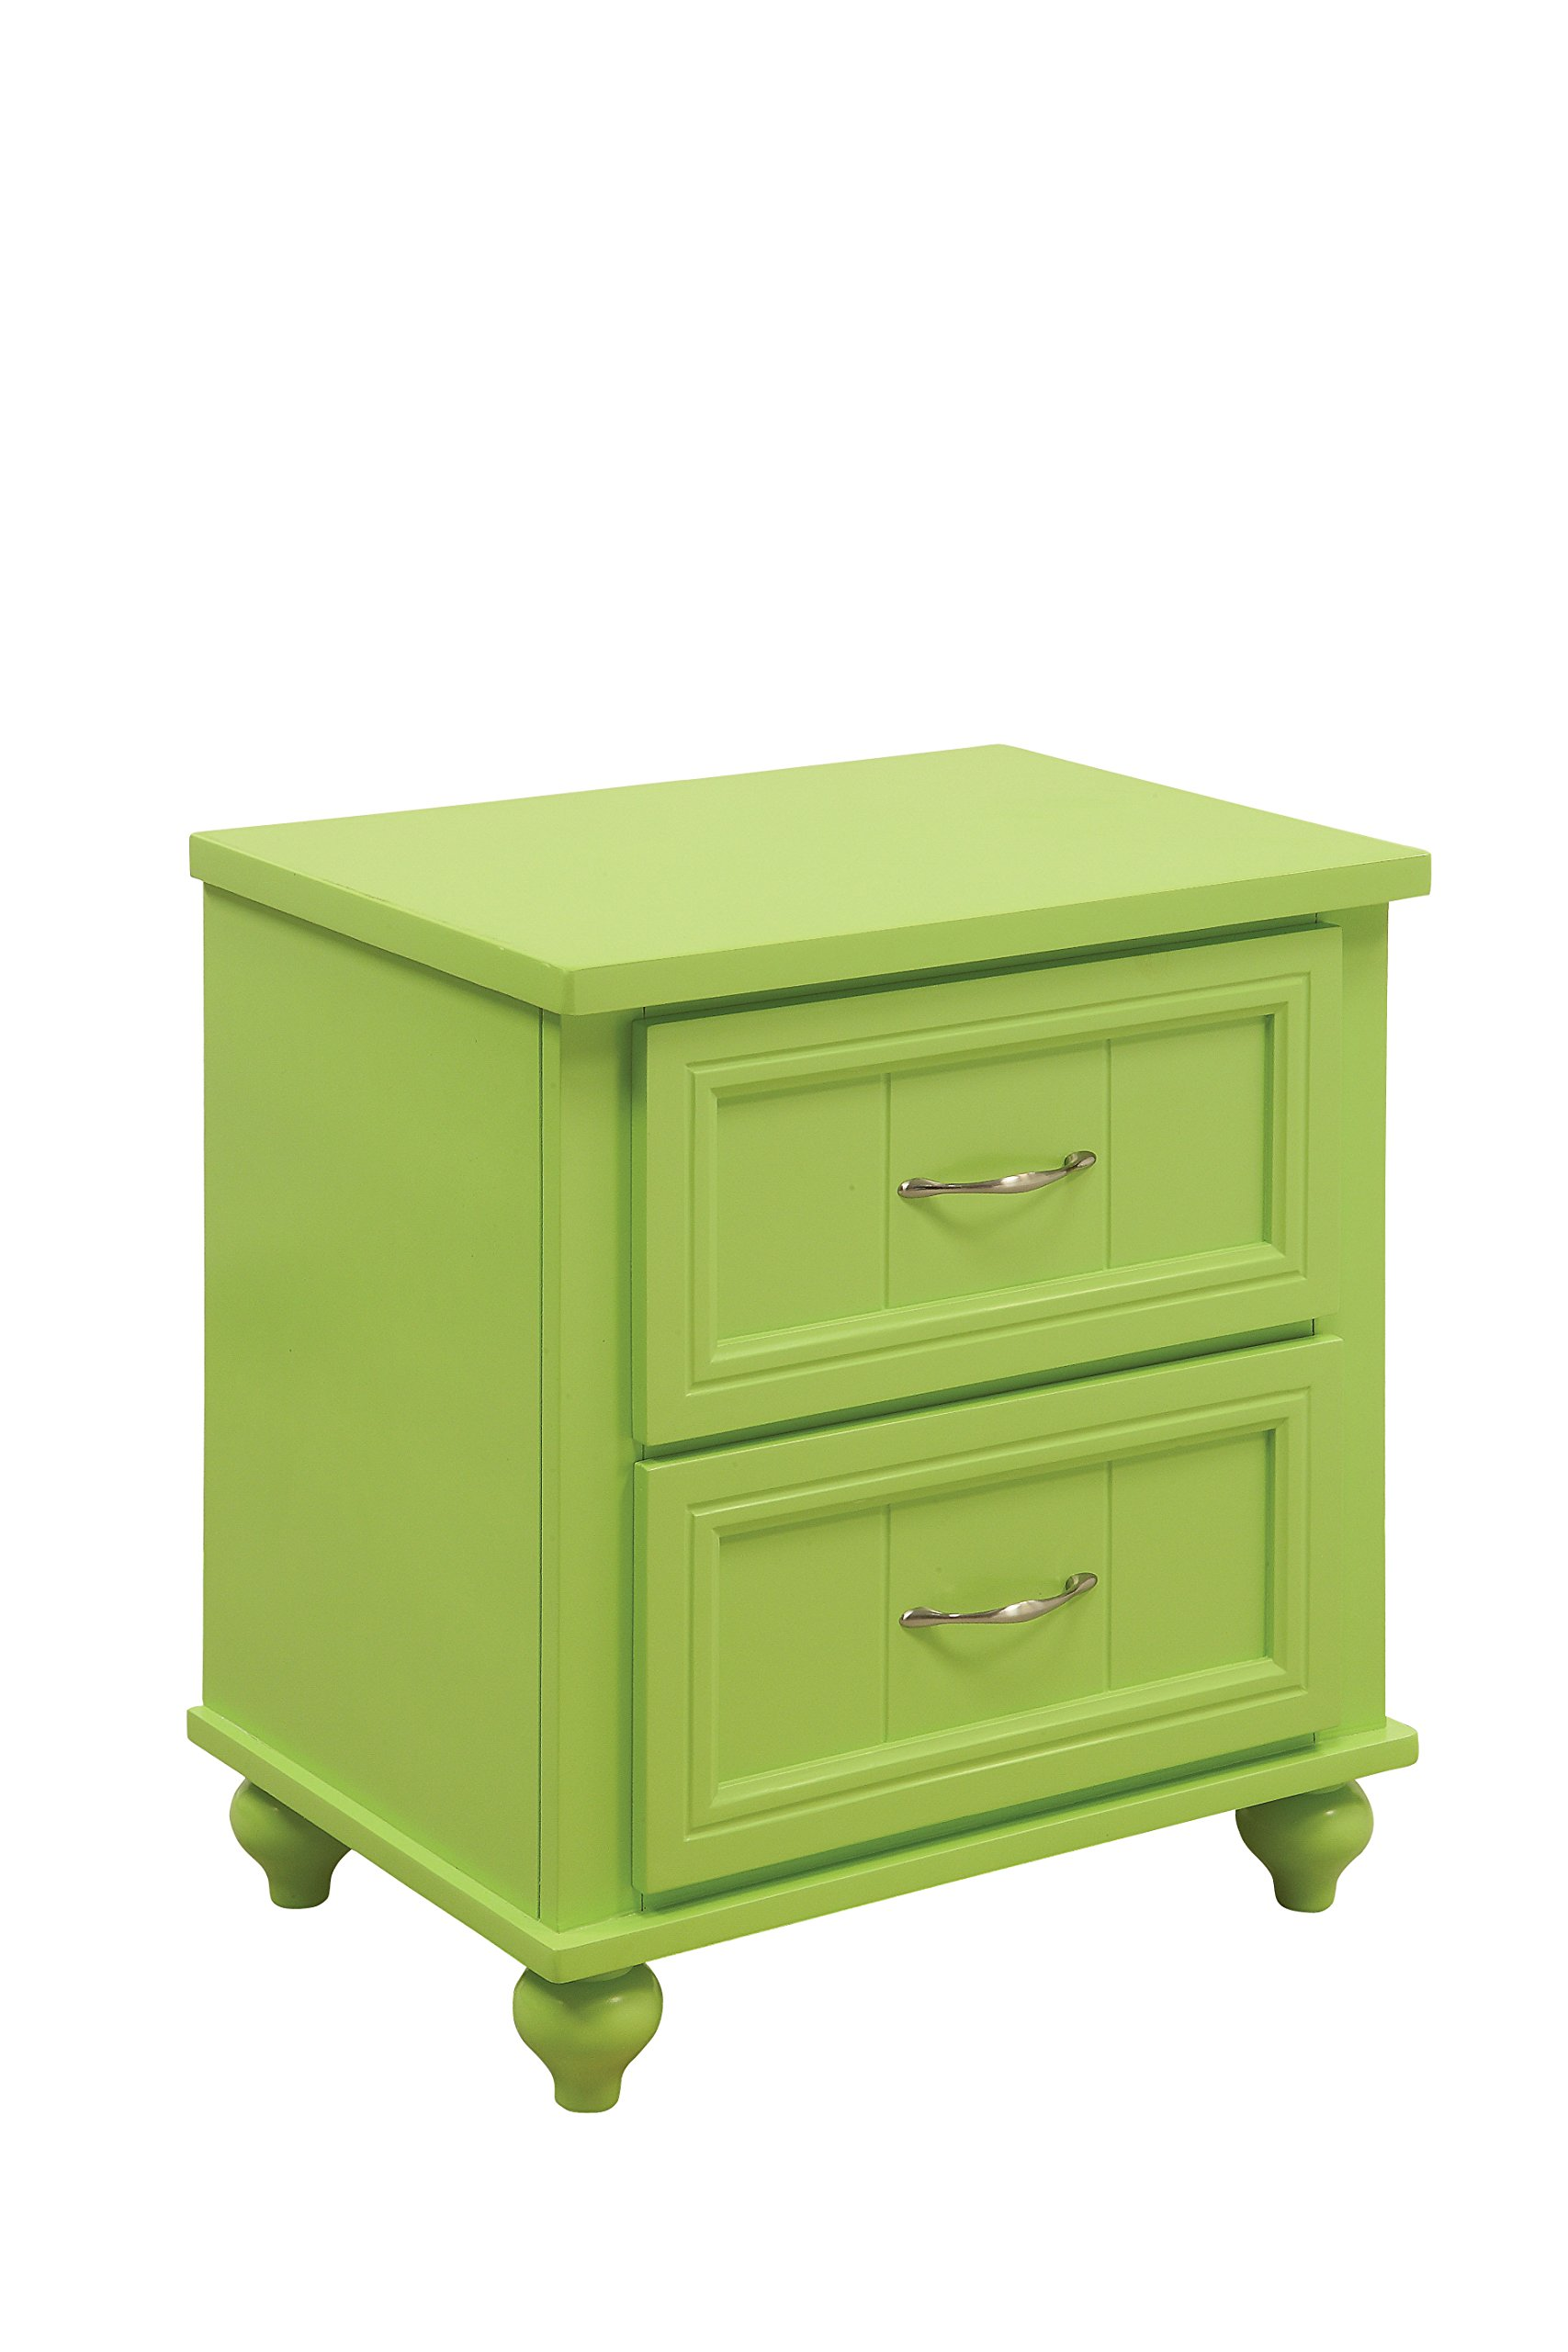 HOMES: Inside + Out Felix Transitional 2-Drawer Nightstand, Apple Green